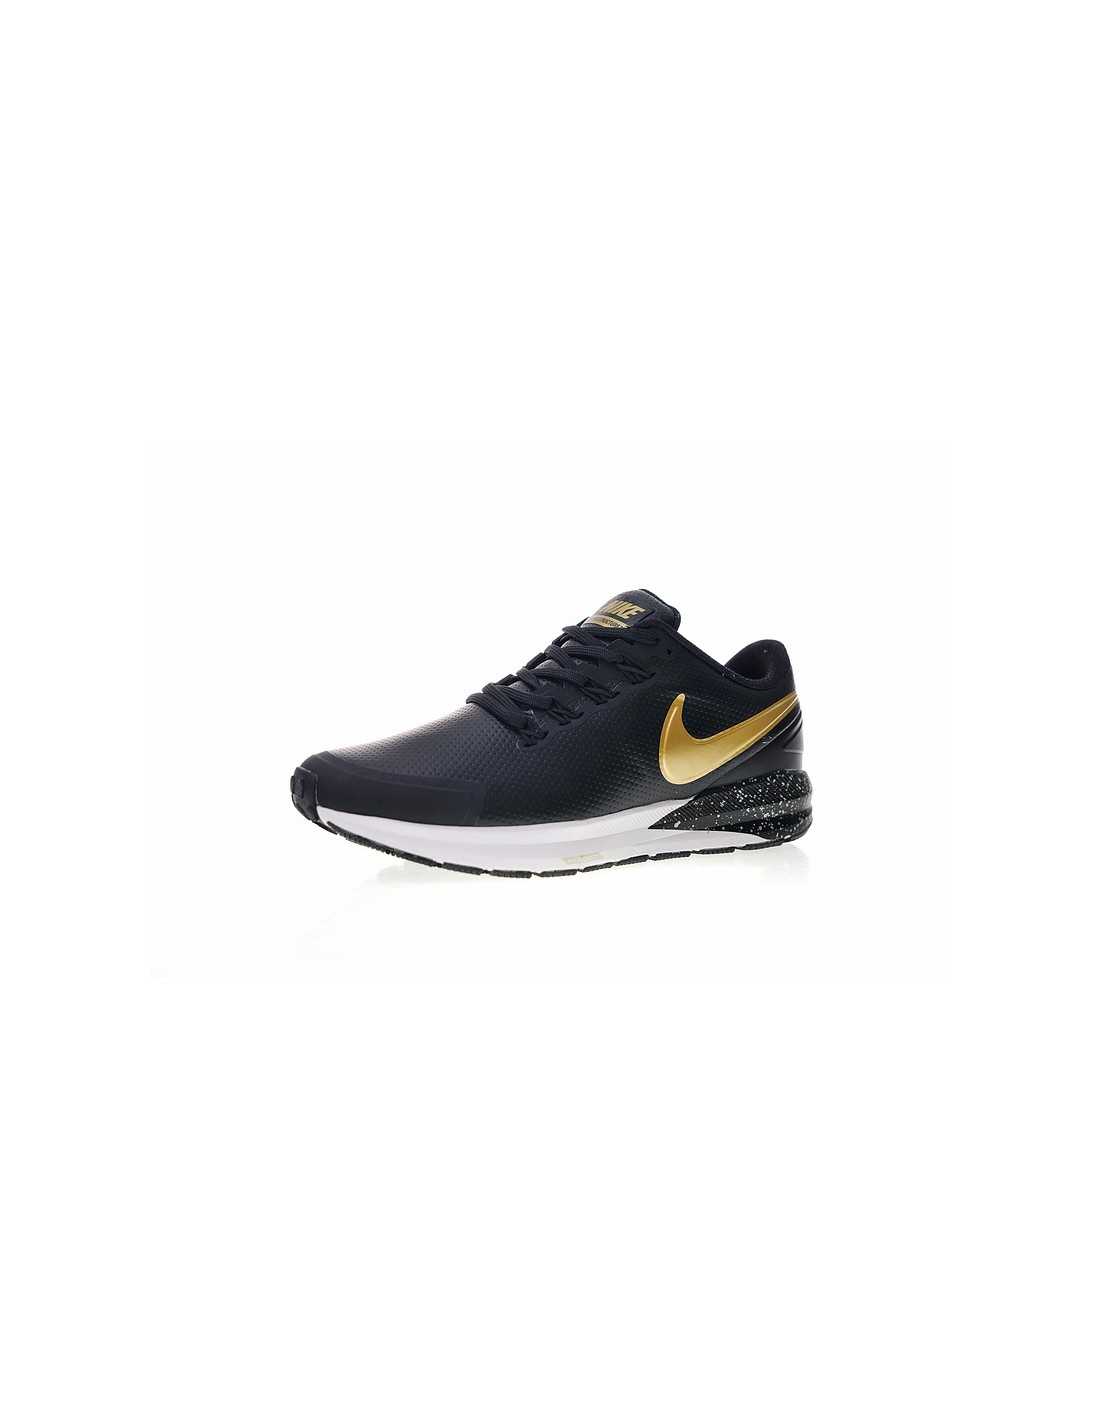 Nike Air Zoom Structure 22 Leather Men's Shoe